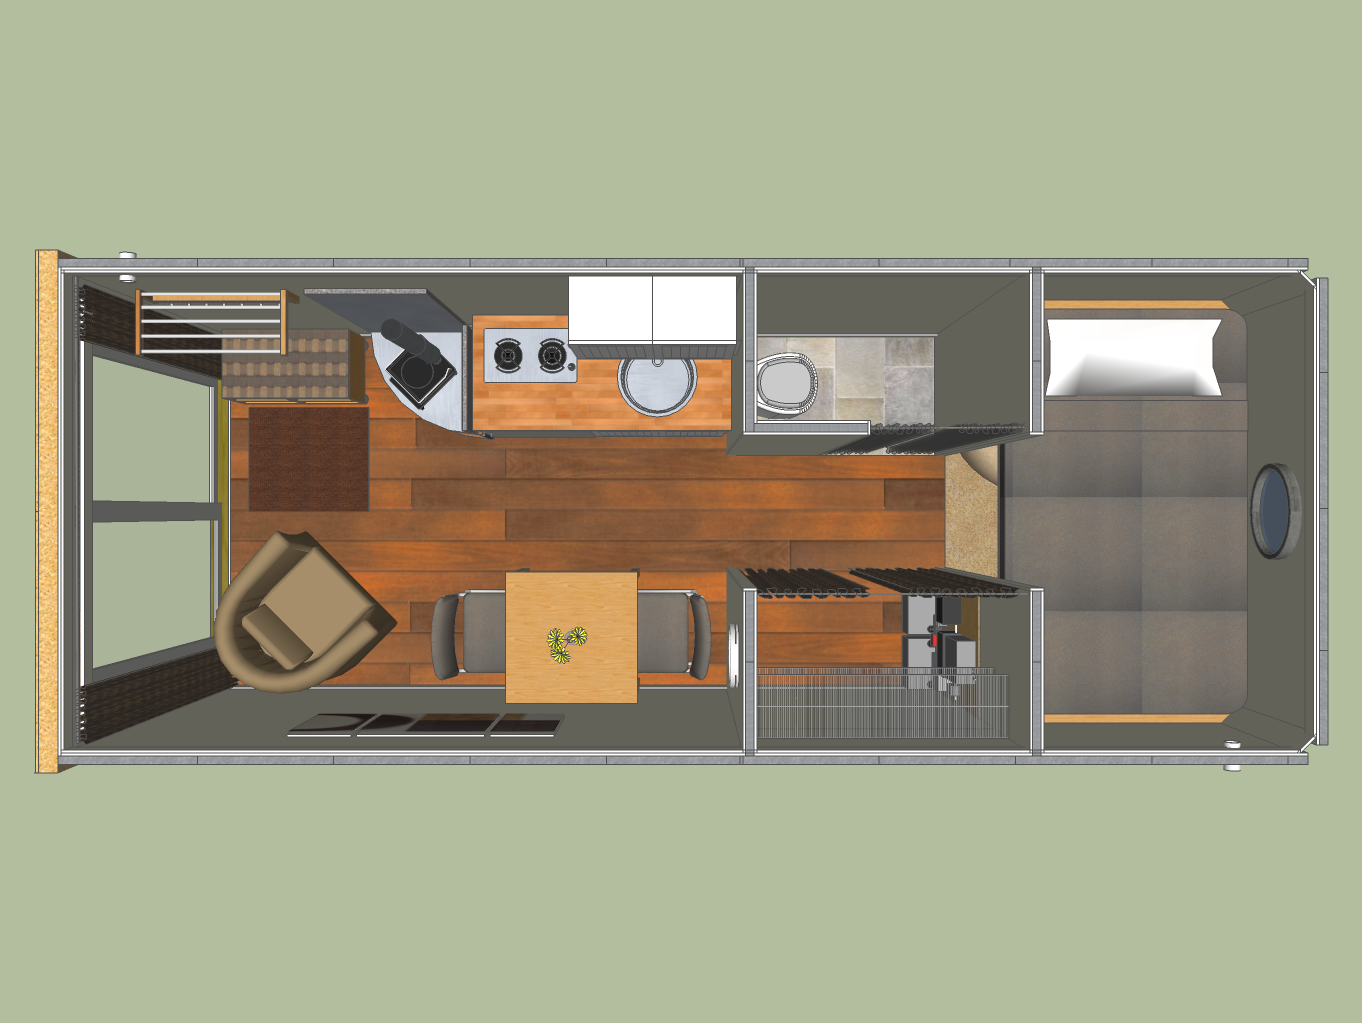 40 foot container home pictures floor plan for 8 x 40 shipping home design interior grey color shipping container cabin plans with orange wood floor marvelous cabin of shipping container cabin container home home